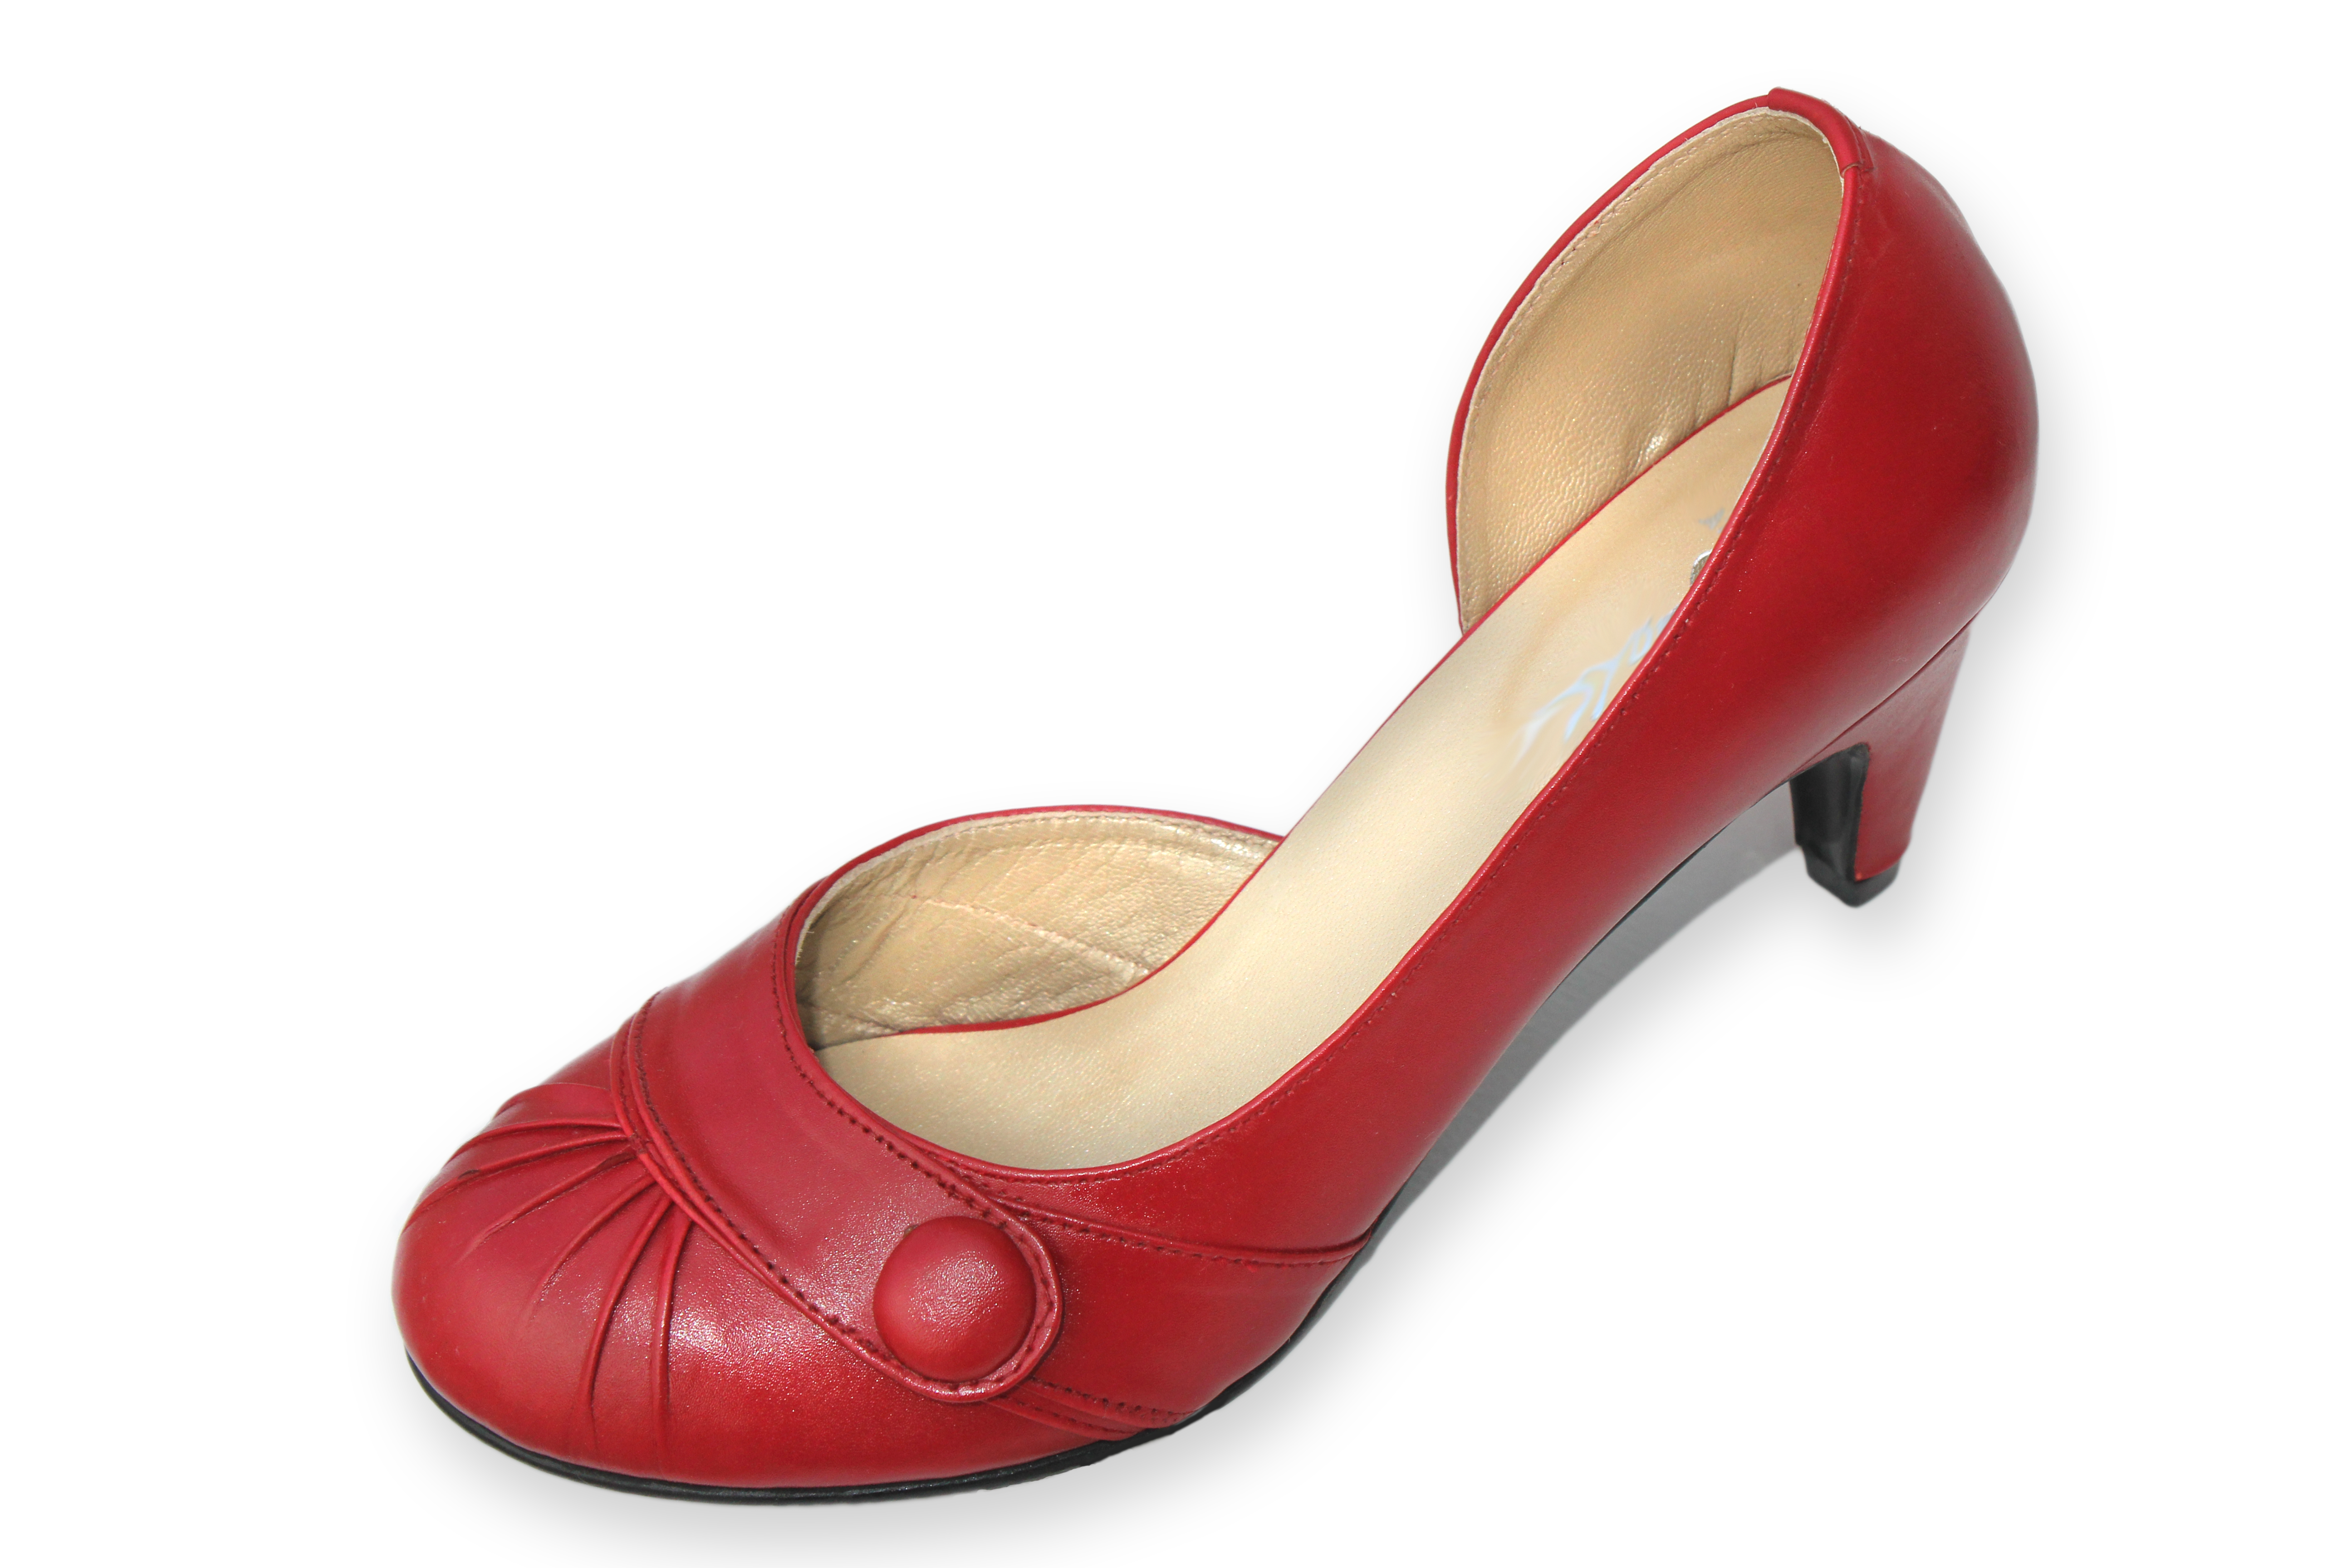 Sandals shoes facebook - Red Pair Of Pumps Join Our Facebook Page Http Www